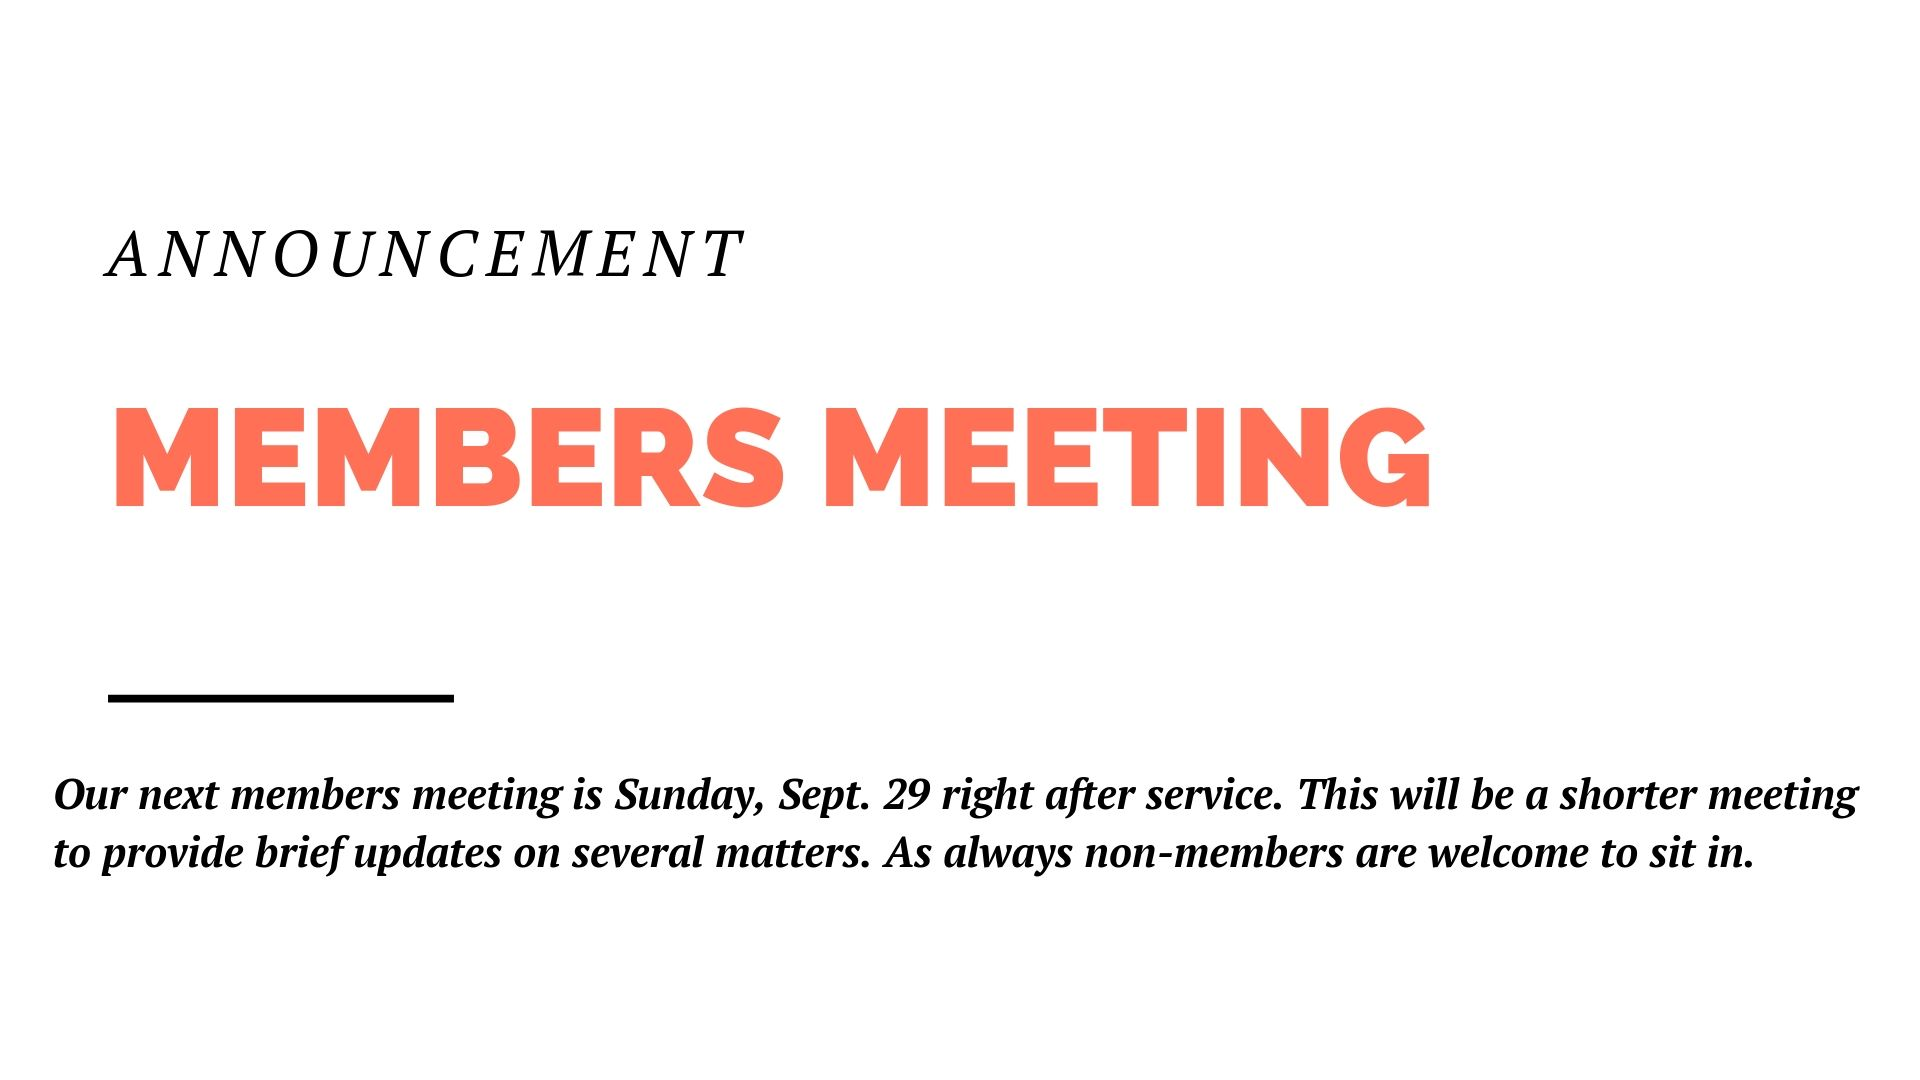 Mark your calendars, our next members meeting is Sunday, Sept. 29 right after service. This will be a shorter meeting to provide brief updates on several matters. As always non-members are welcome to sit in.